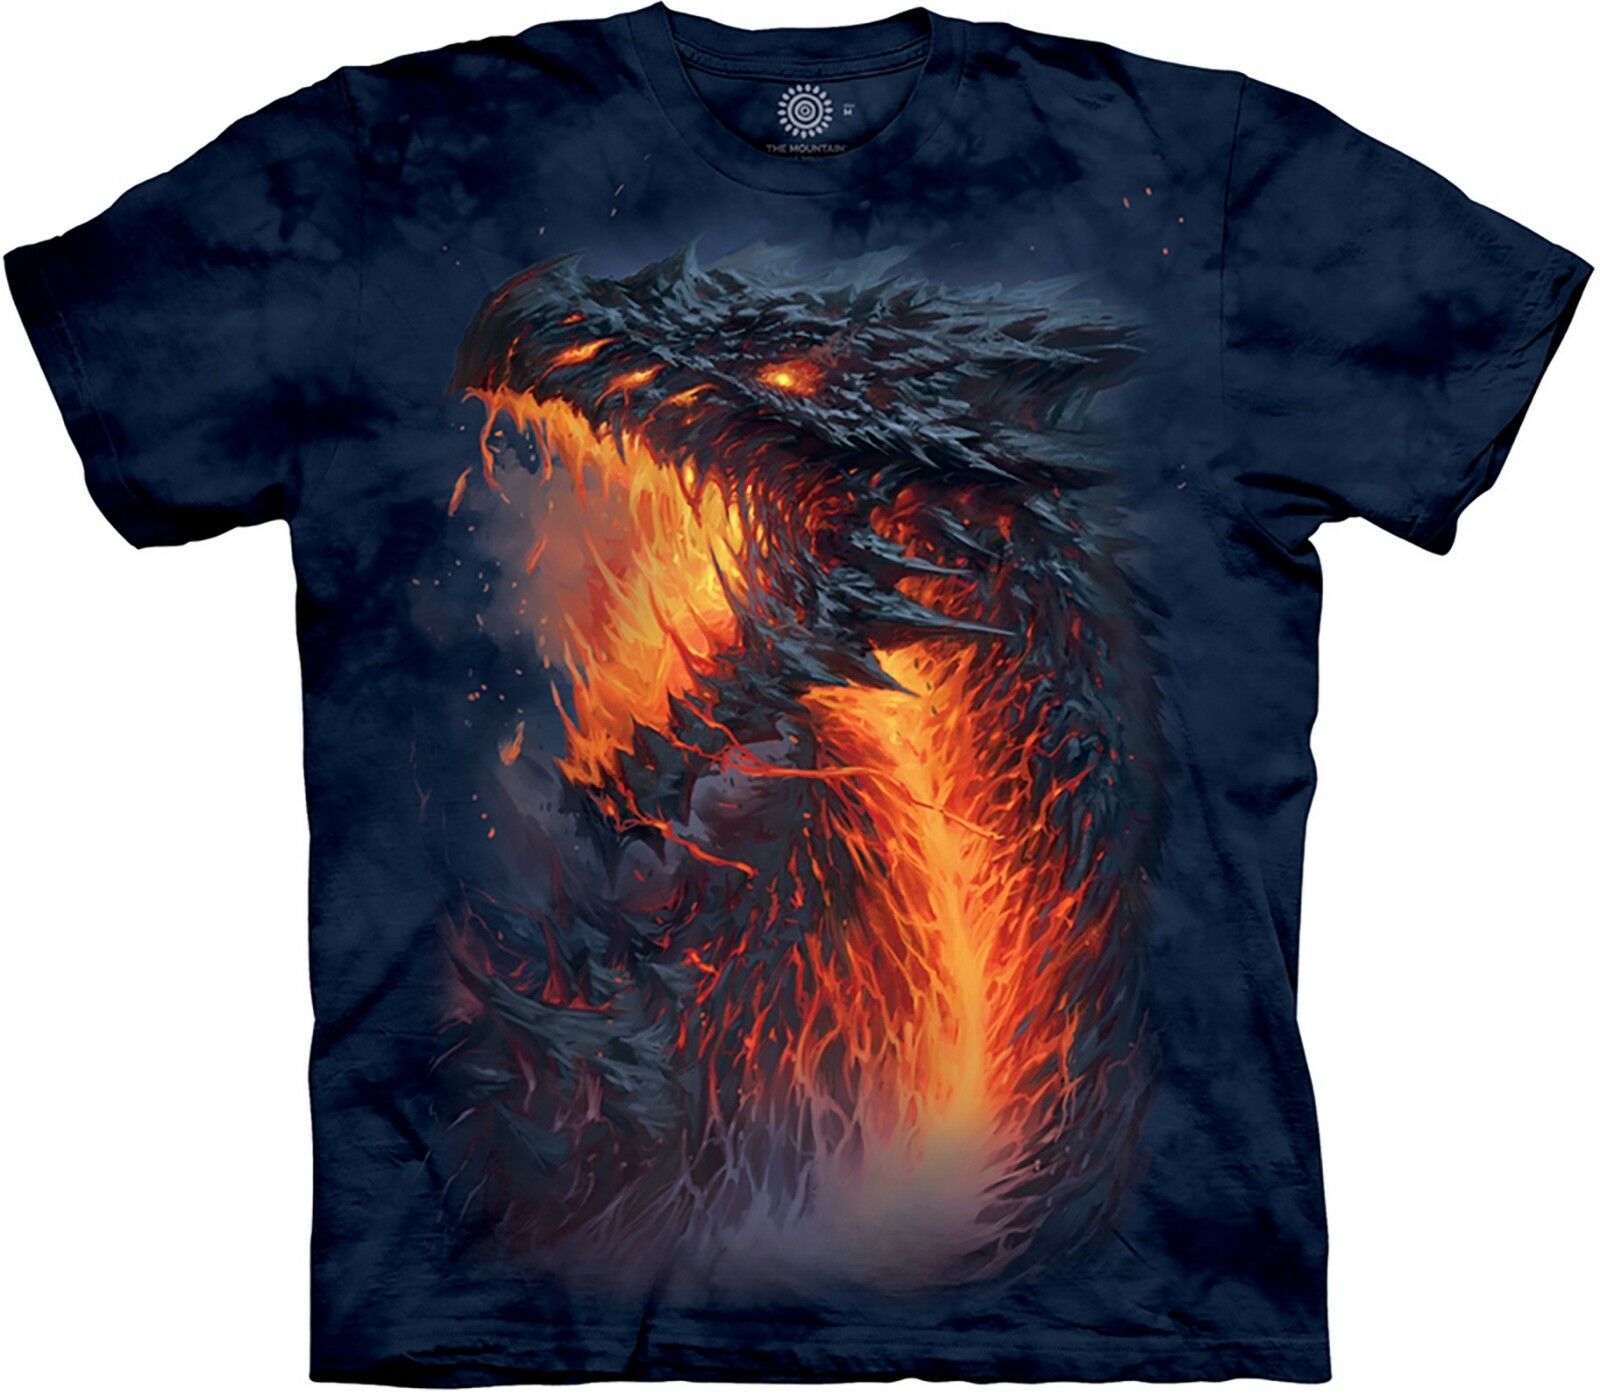 The Mountain Unisex Adult Lavaborn Dragon Fantasy T Shirt